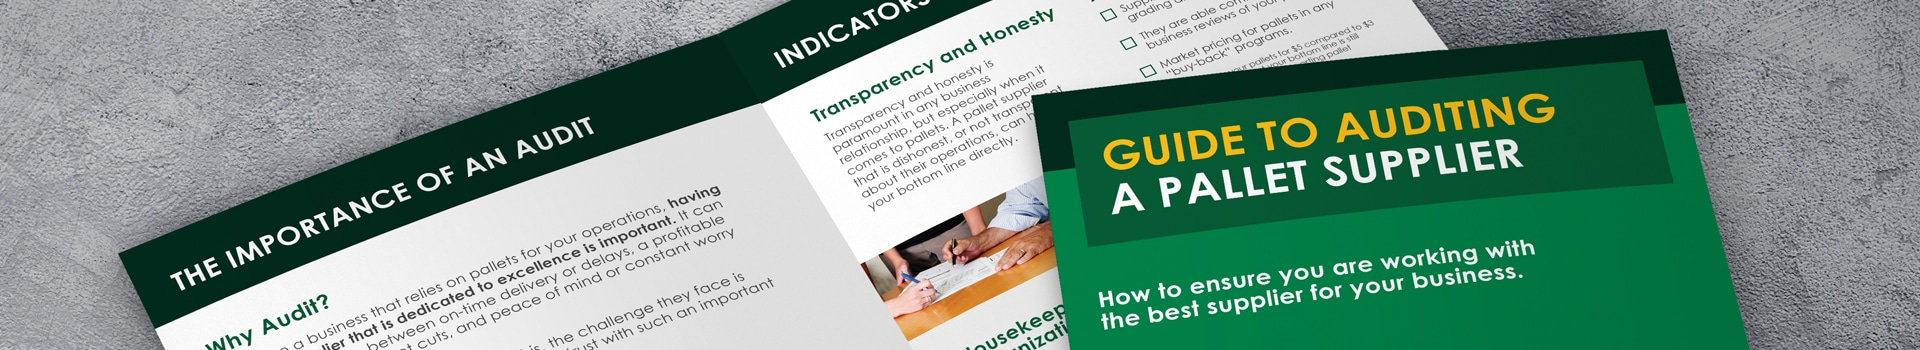 Guide to auditing a pallet supplier pdf preview